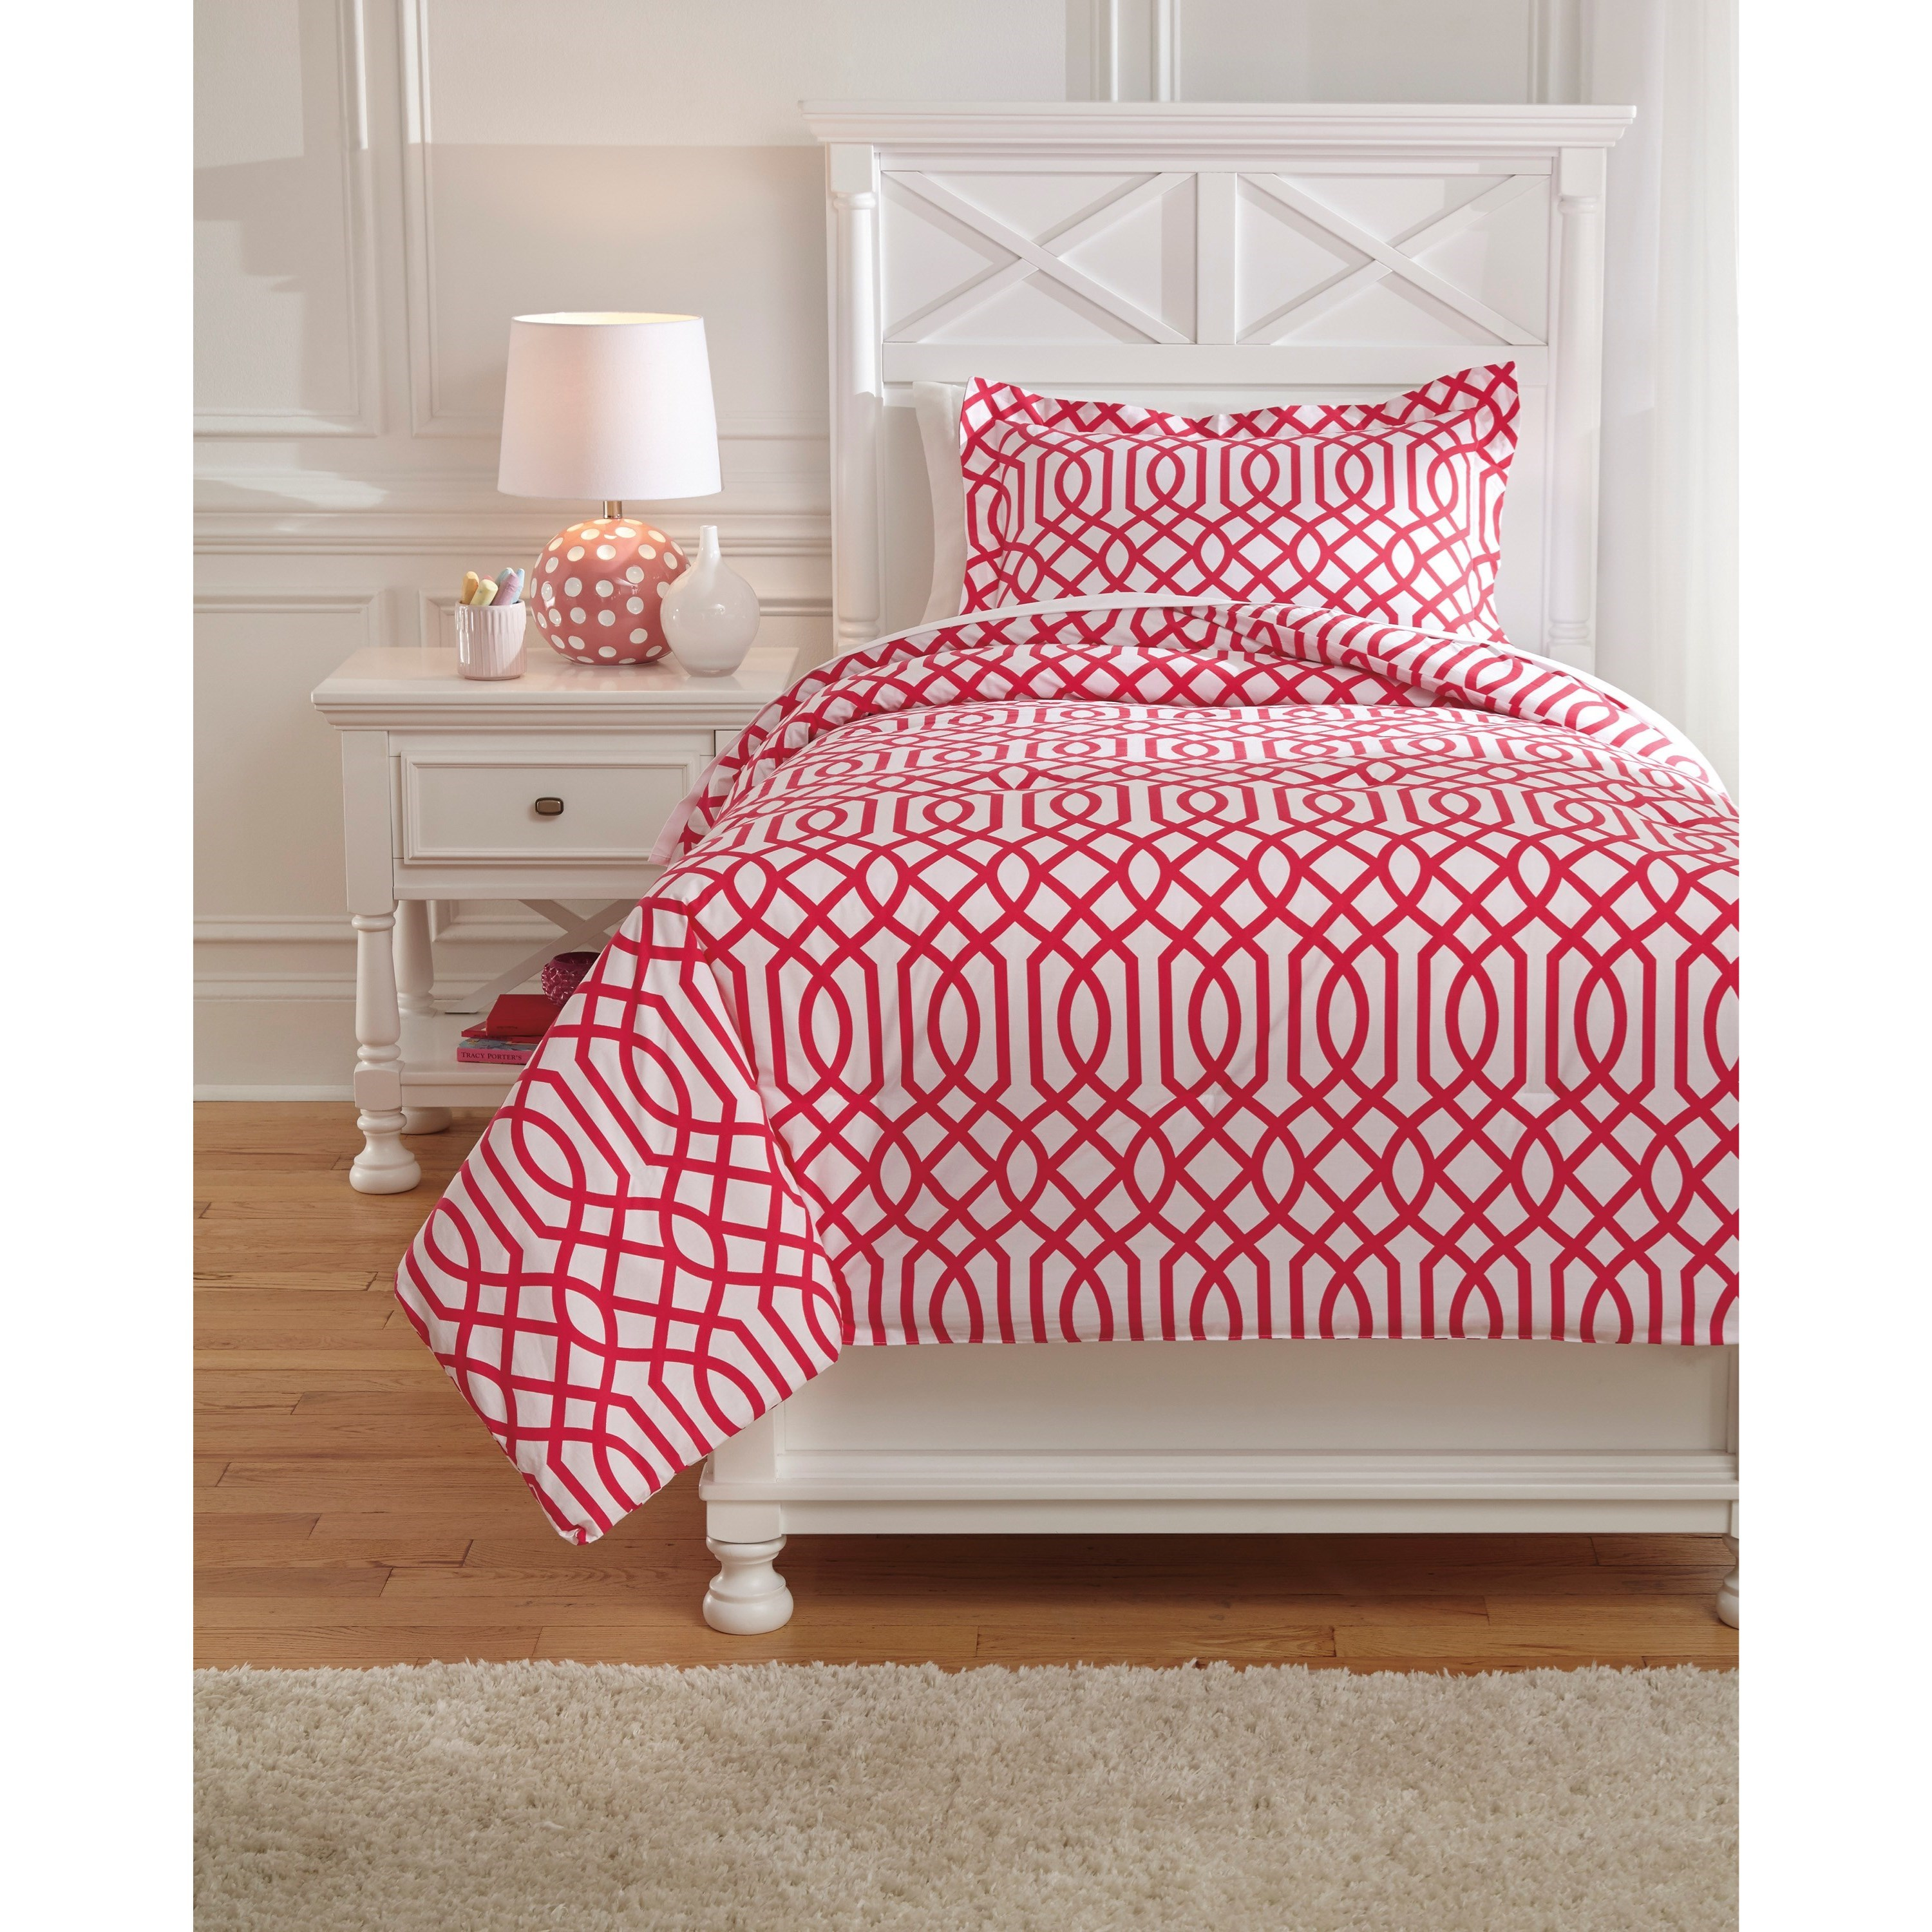 Bedding Sets Twin Loomis Fuschsia Comforter Set by Signature Design by Ashley at Furniture Fair - North Carolina